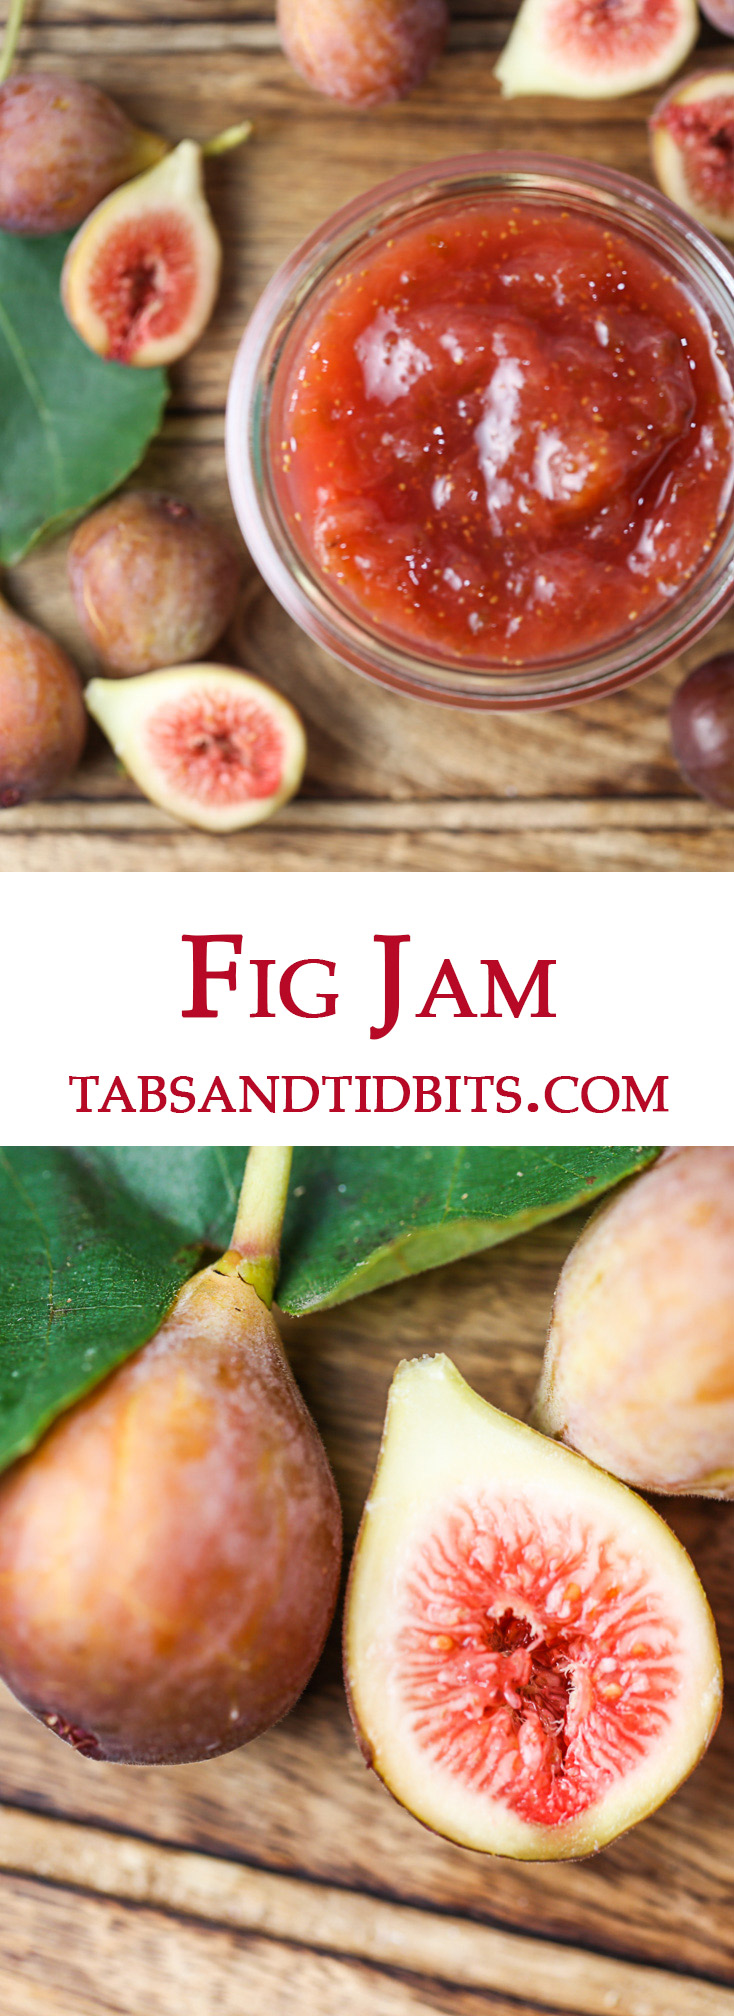 An easy to make jam with fresh figs, lemon juice, and sugar create a sweet and simple treat!